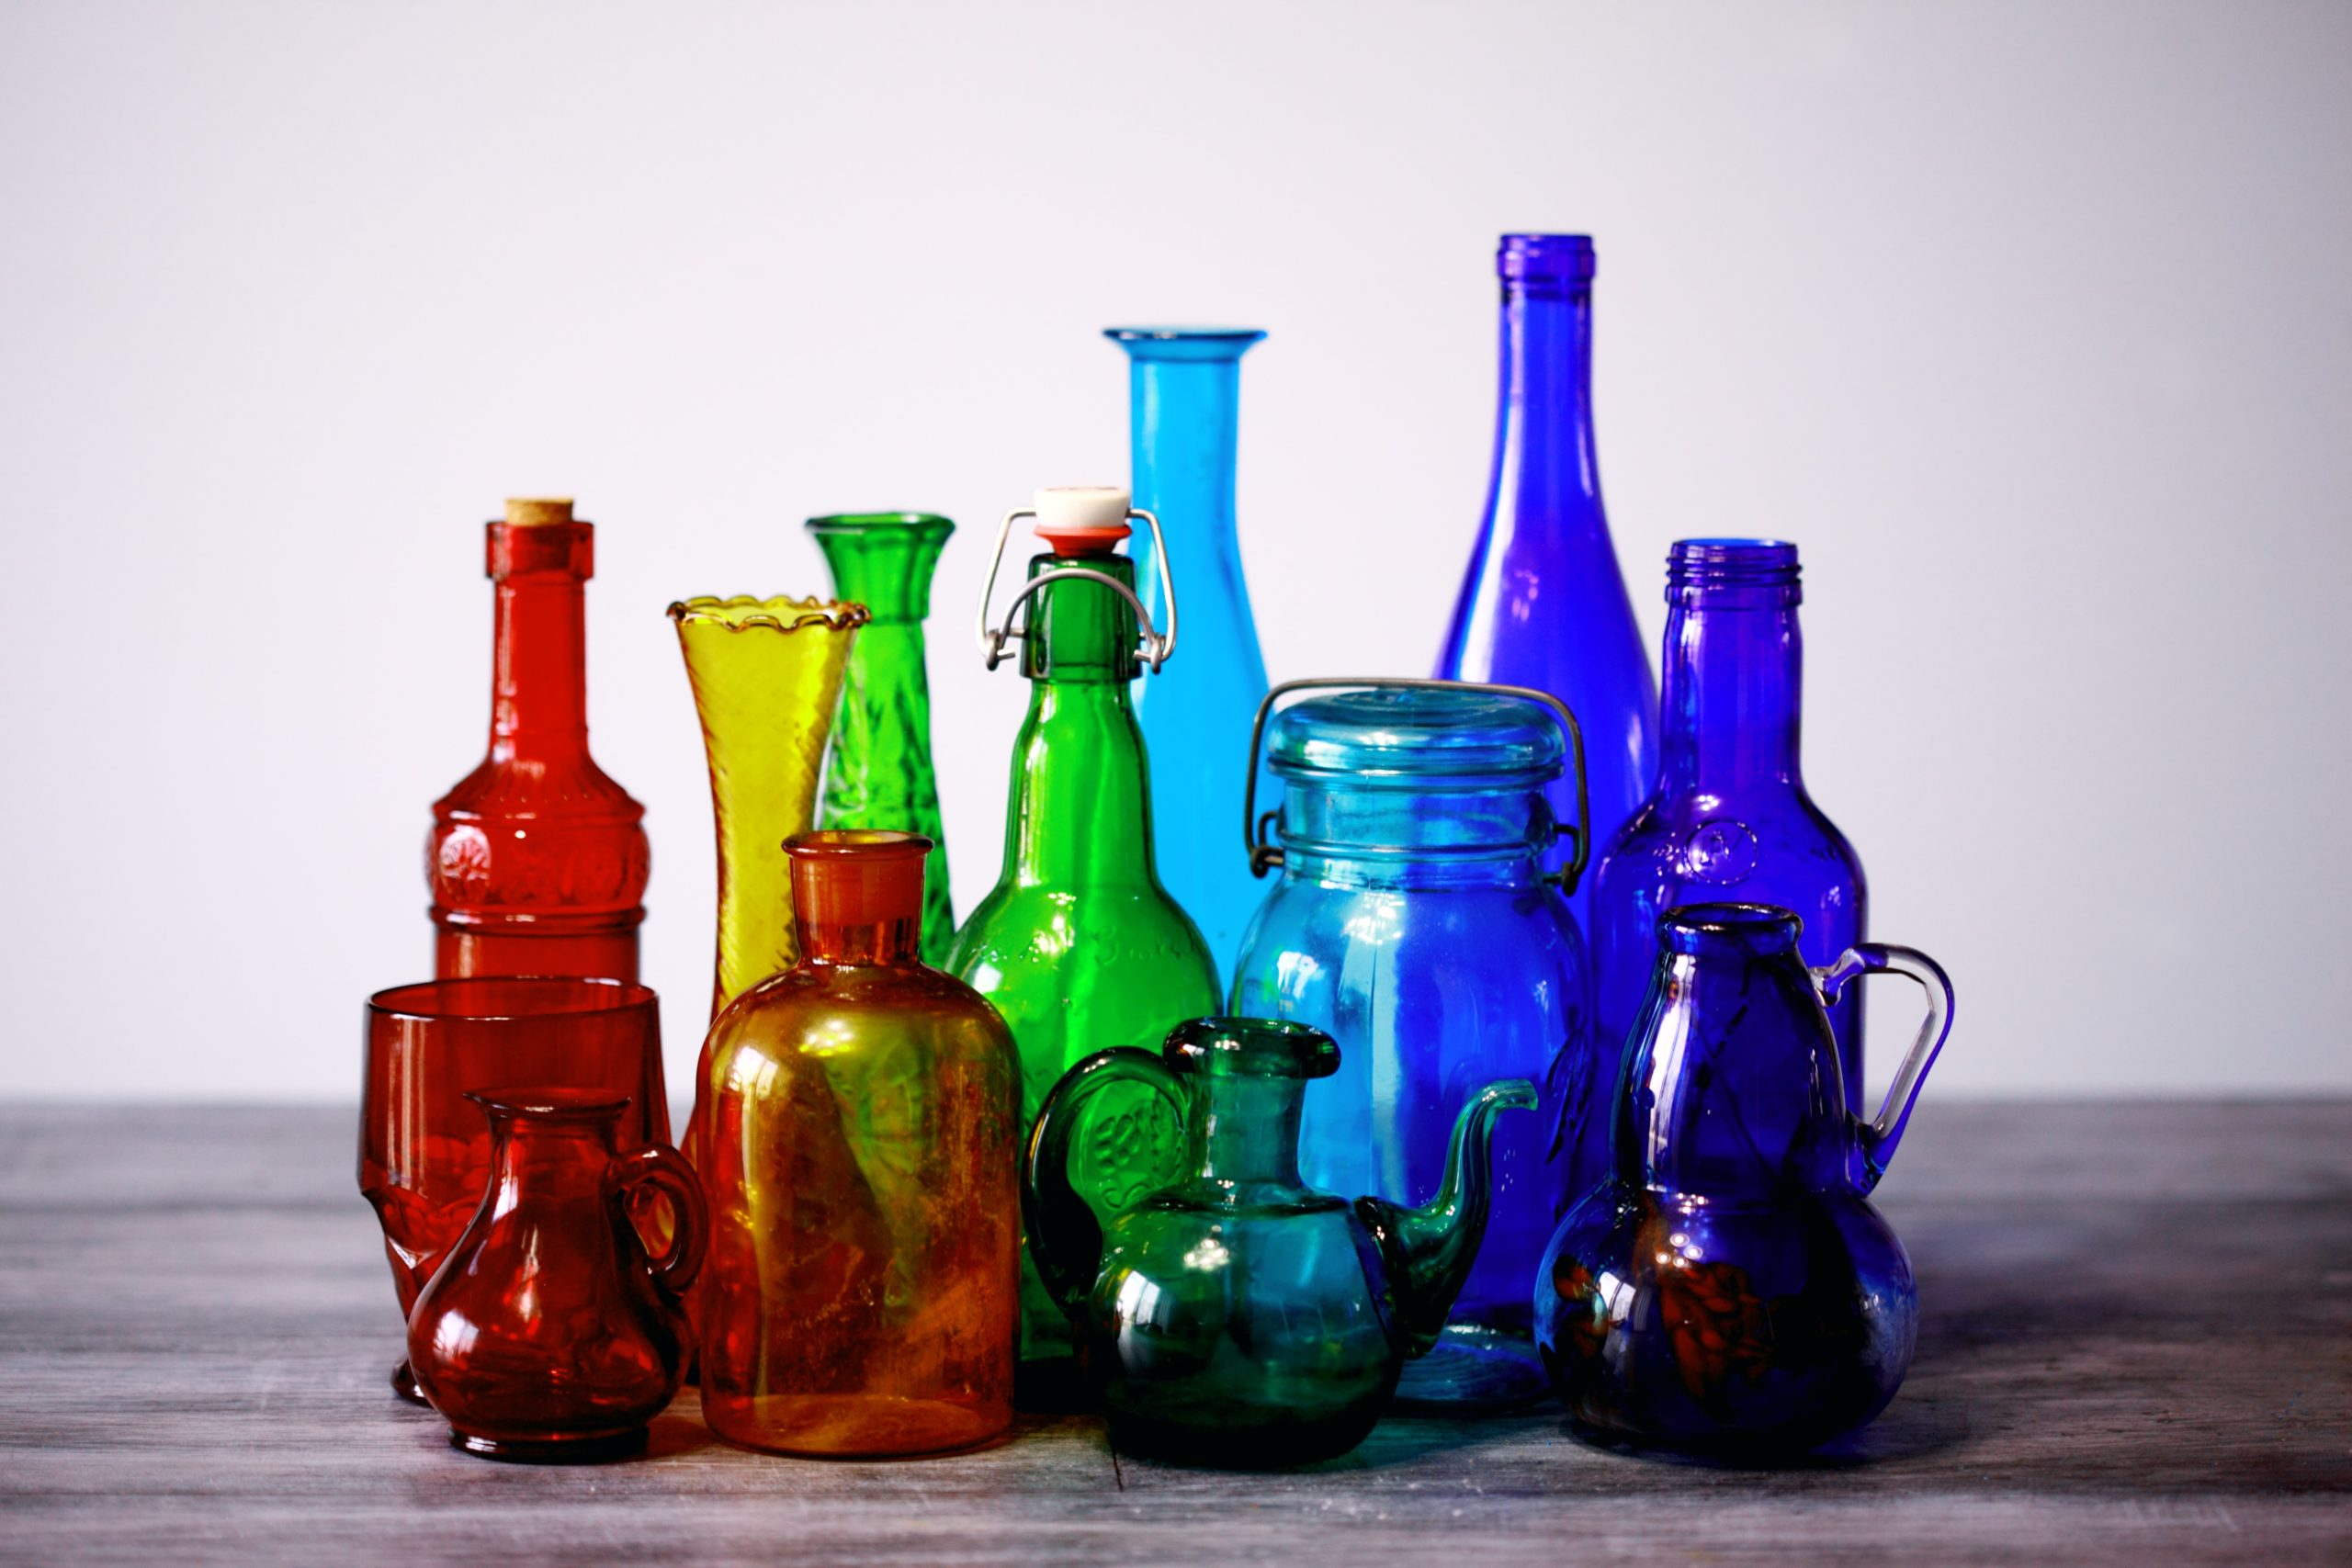 How Glass Containers are Colored?